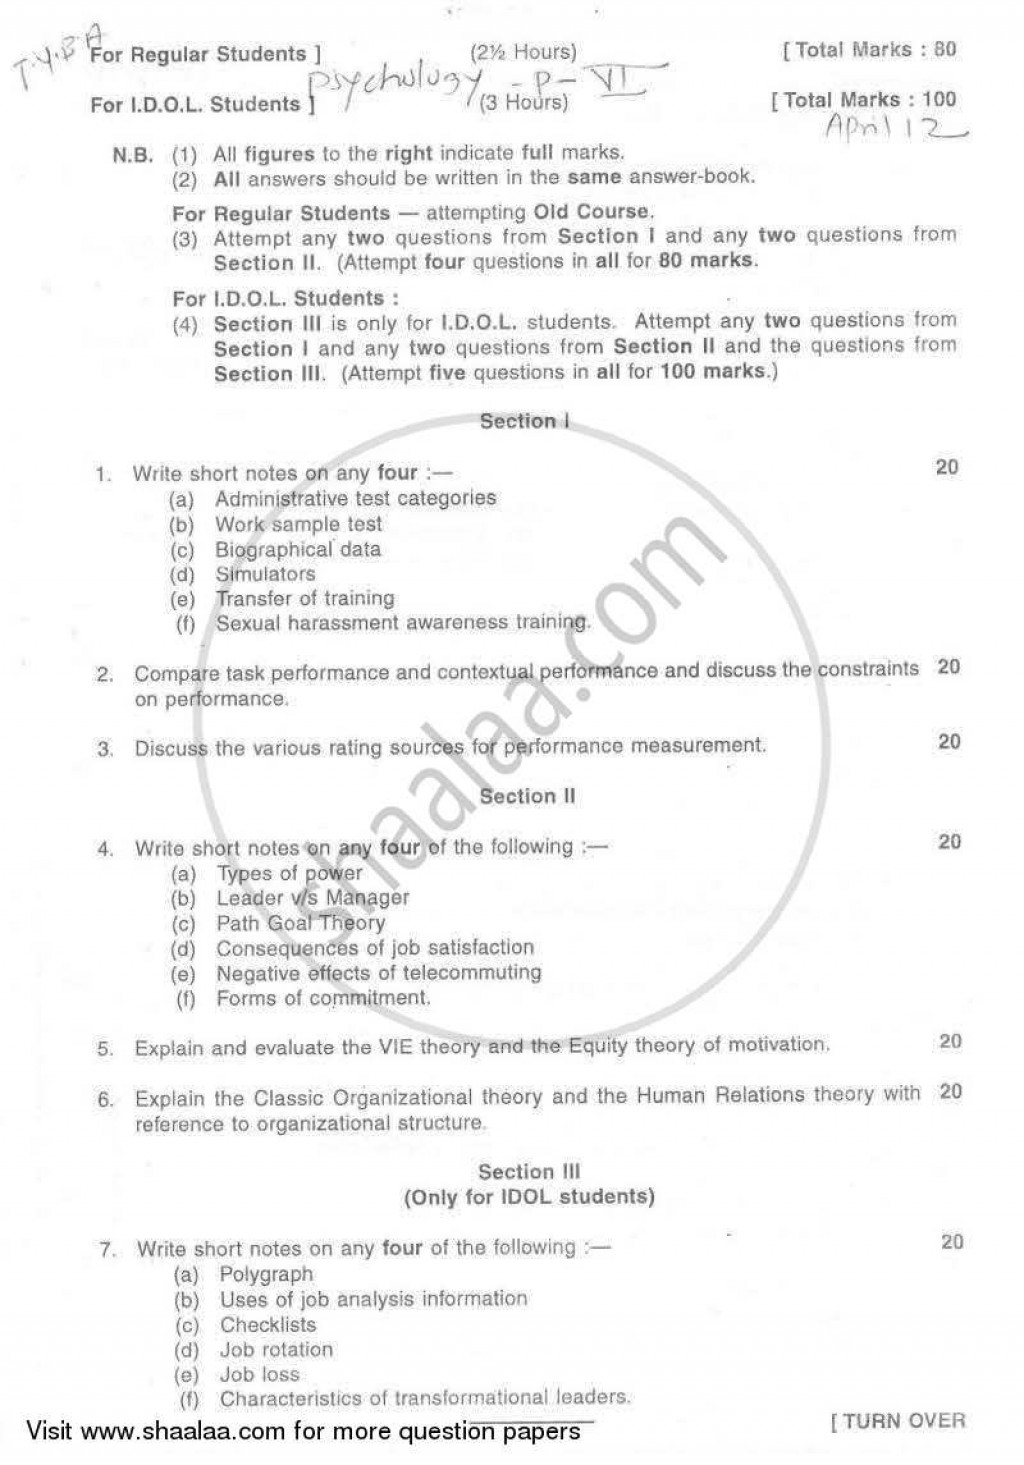 017 Psychologyearch Paper On Dreams University Of Mumbai Bachelor Industrial Organizational T Y Yearly Pattern Semester Tyba 2011 29a03925dfc524f2aa4cb10e4d3da996a Singular Psychology Research Topics Articles 2017 Large